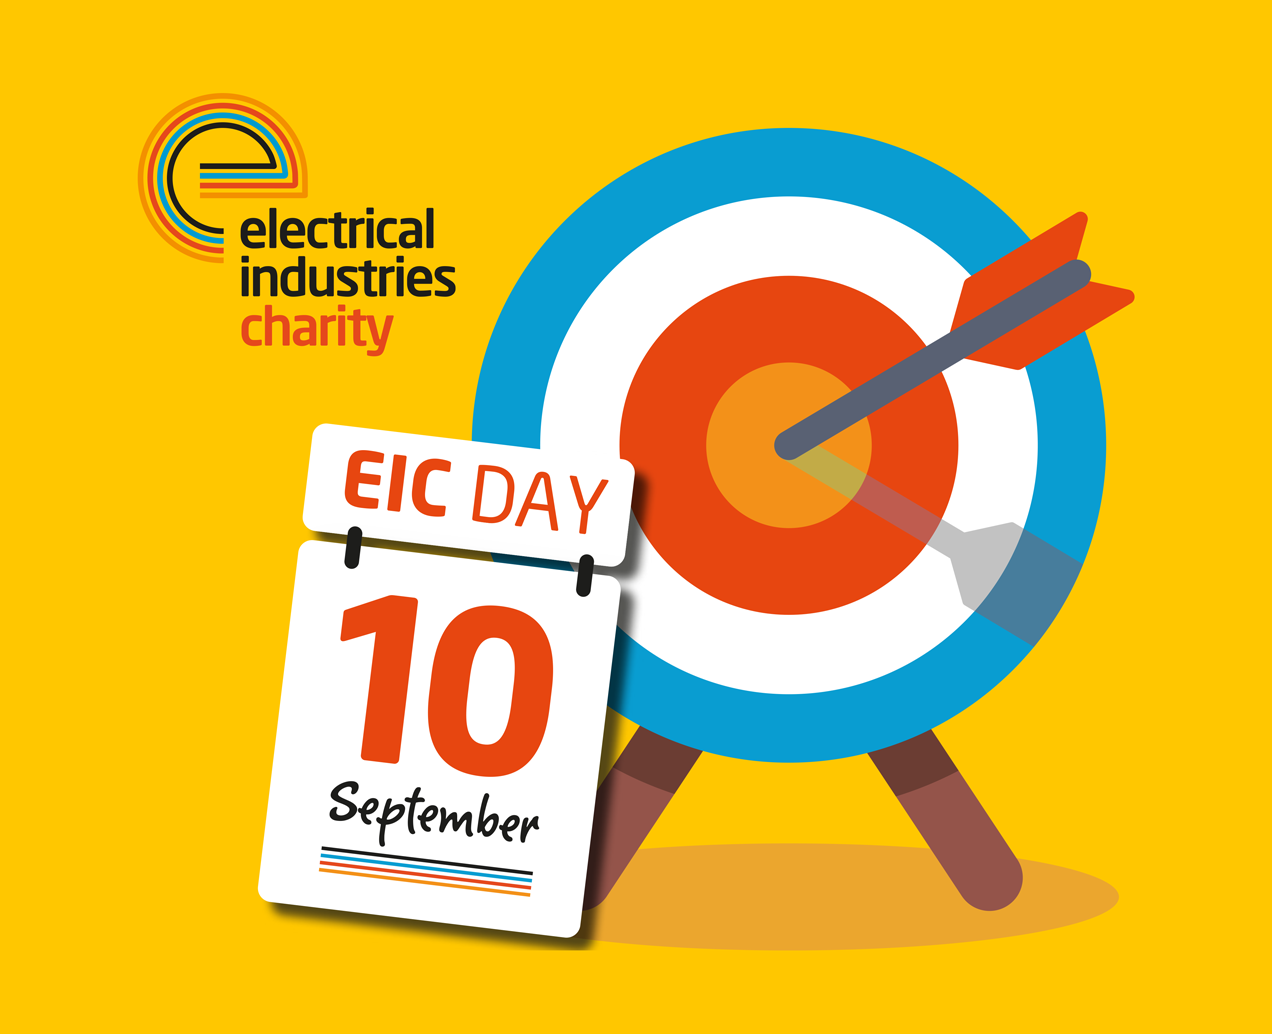 eic day fundraising